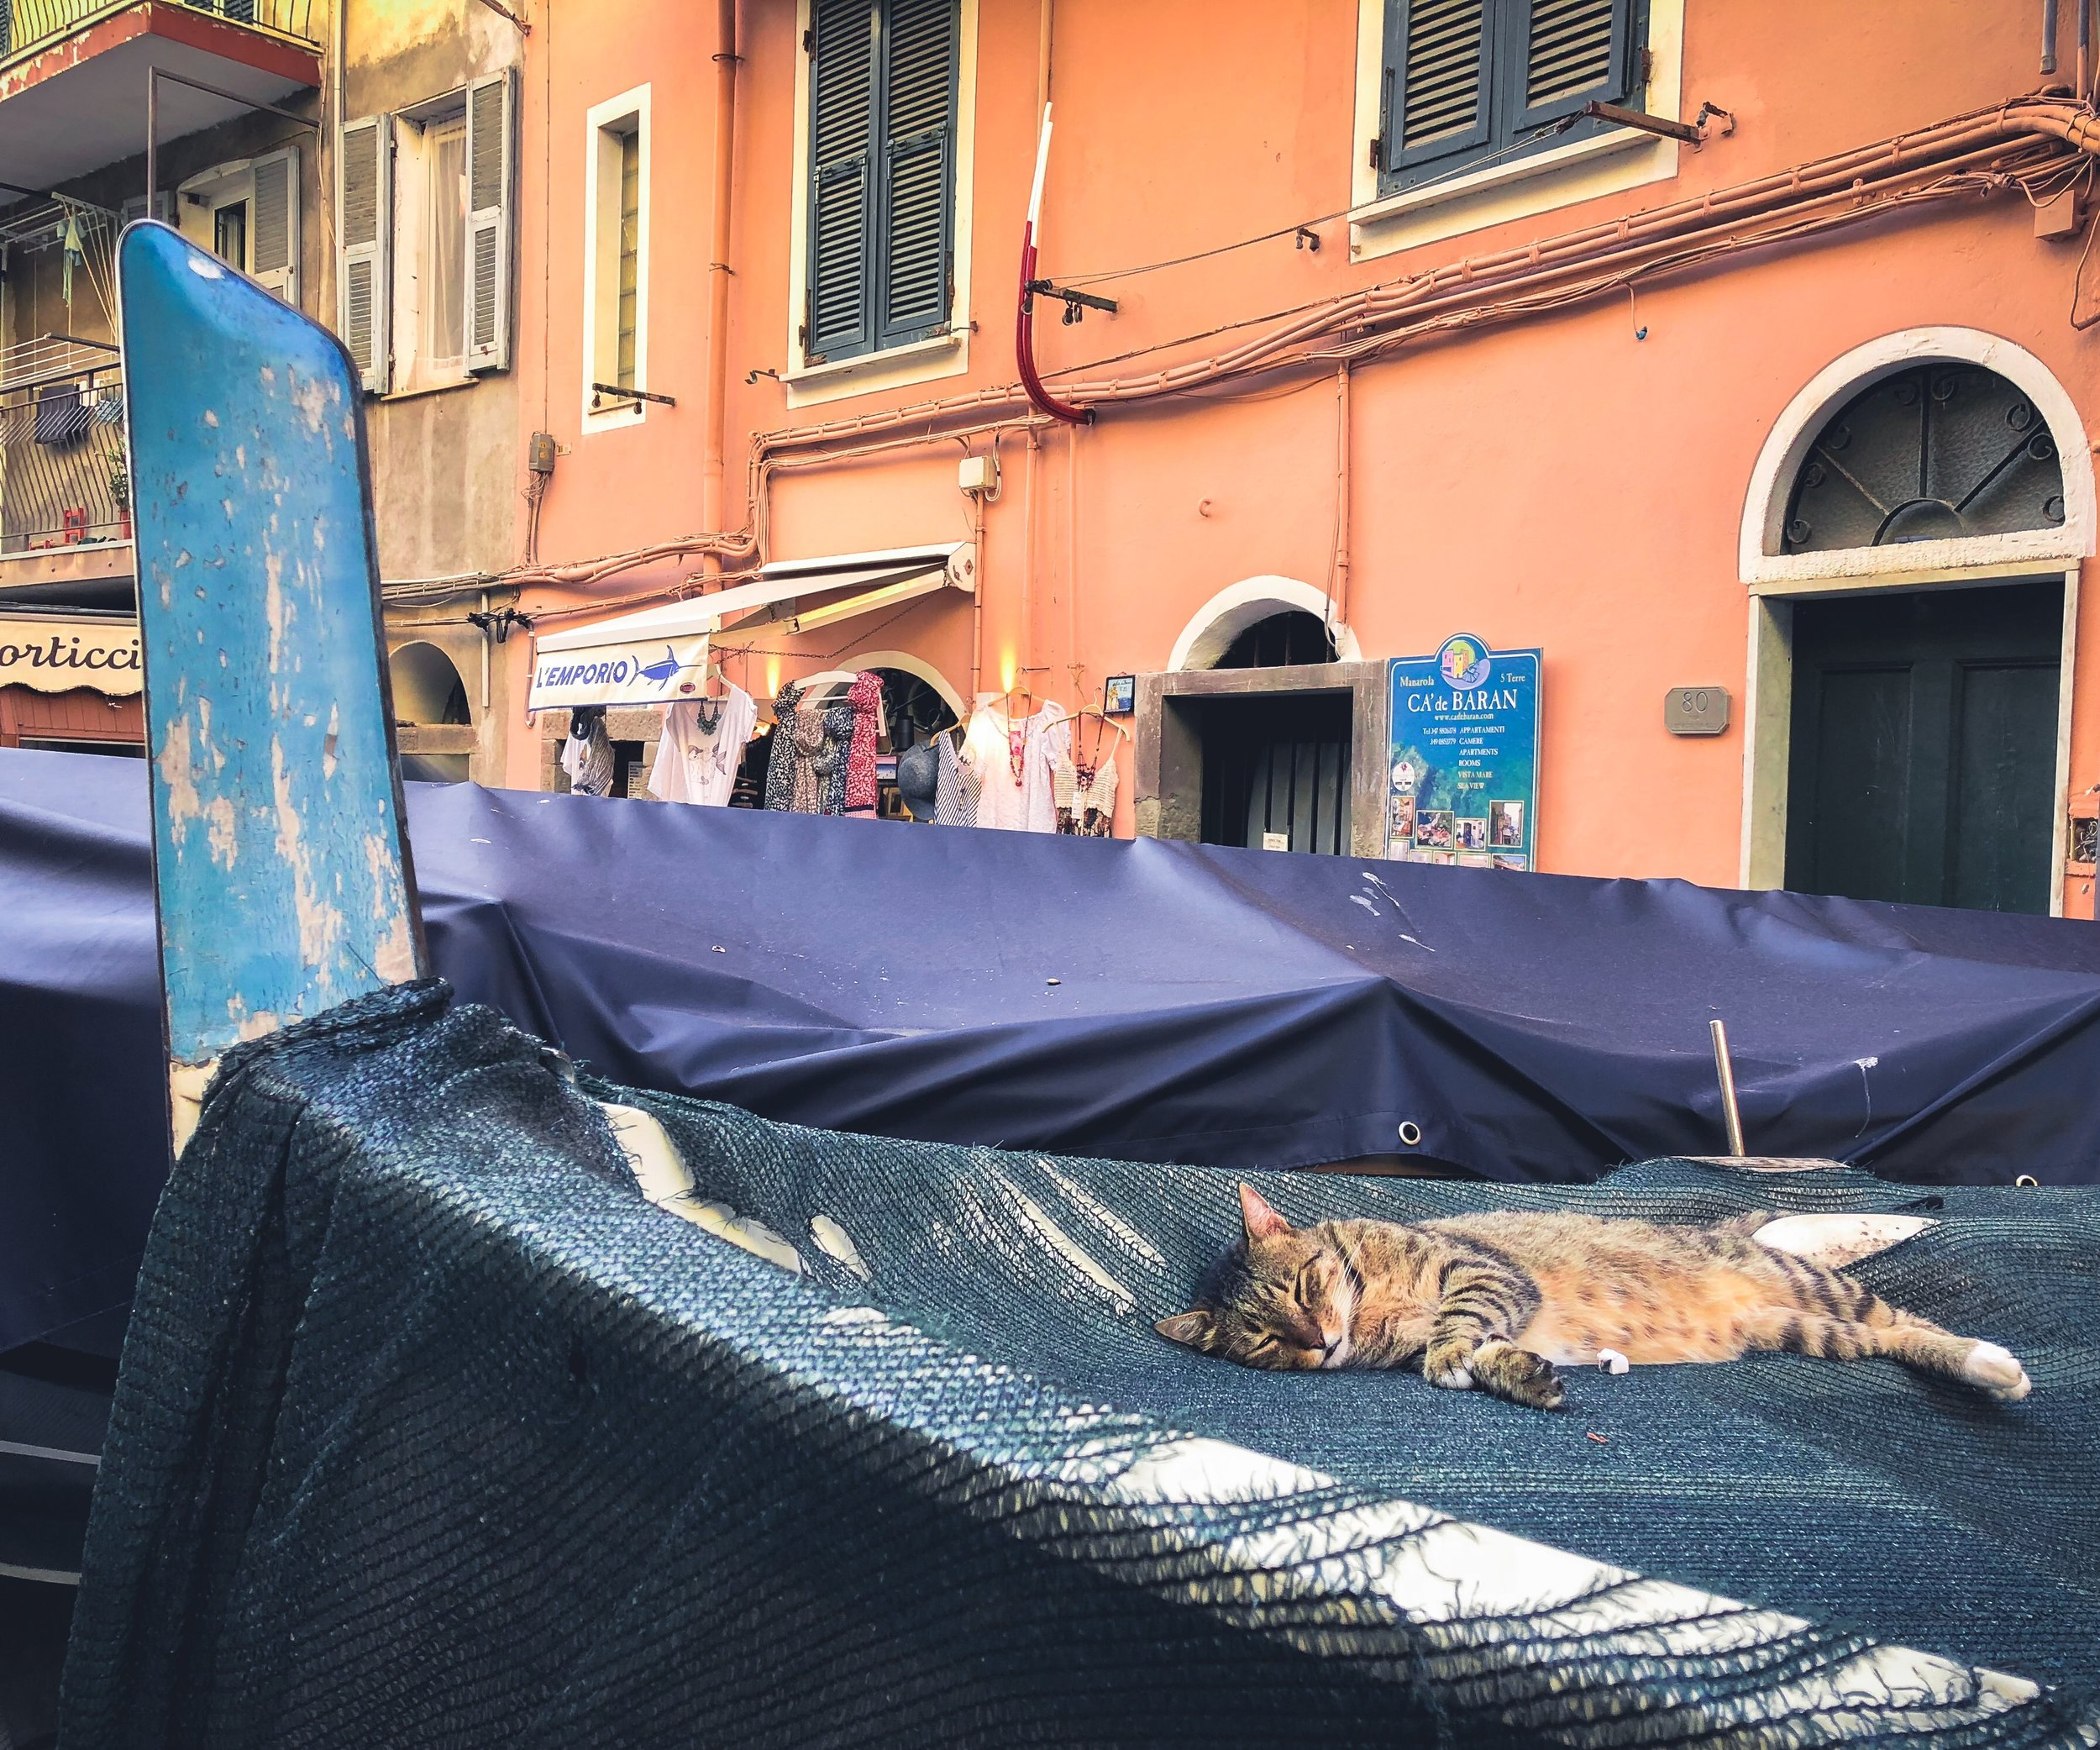 On a stroll through town, we came across this kitty who took it upon itself to take a cat nap inside of a boat… I aspire to be able to sleep anywhere on the spot like this cat!